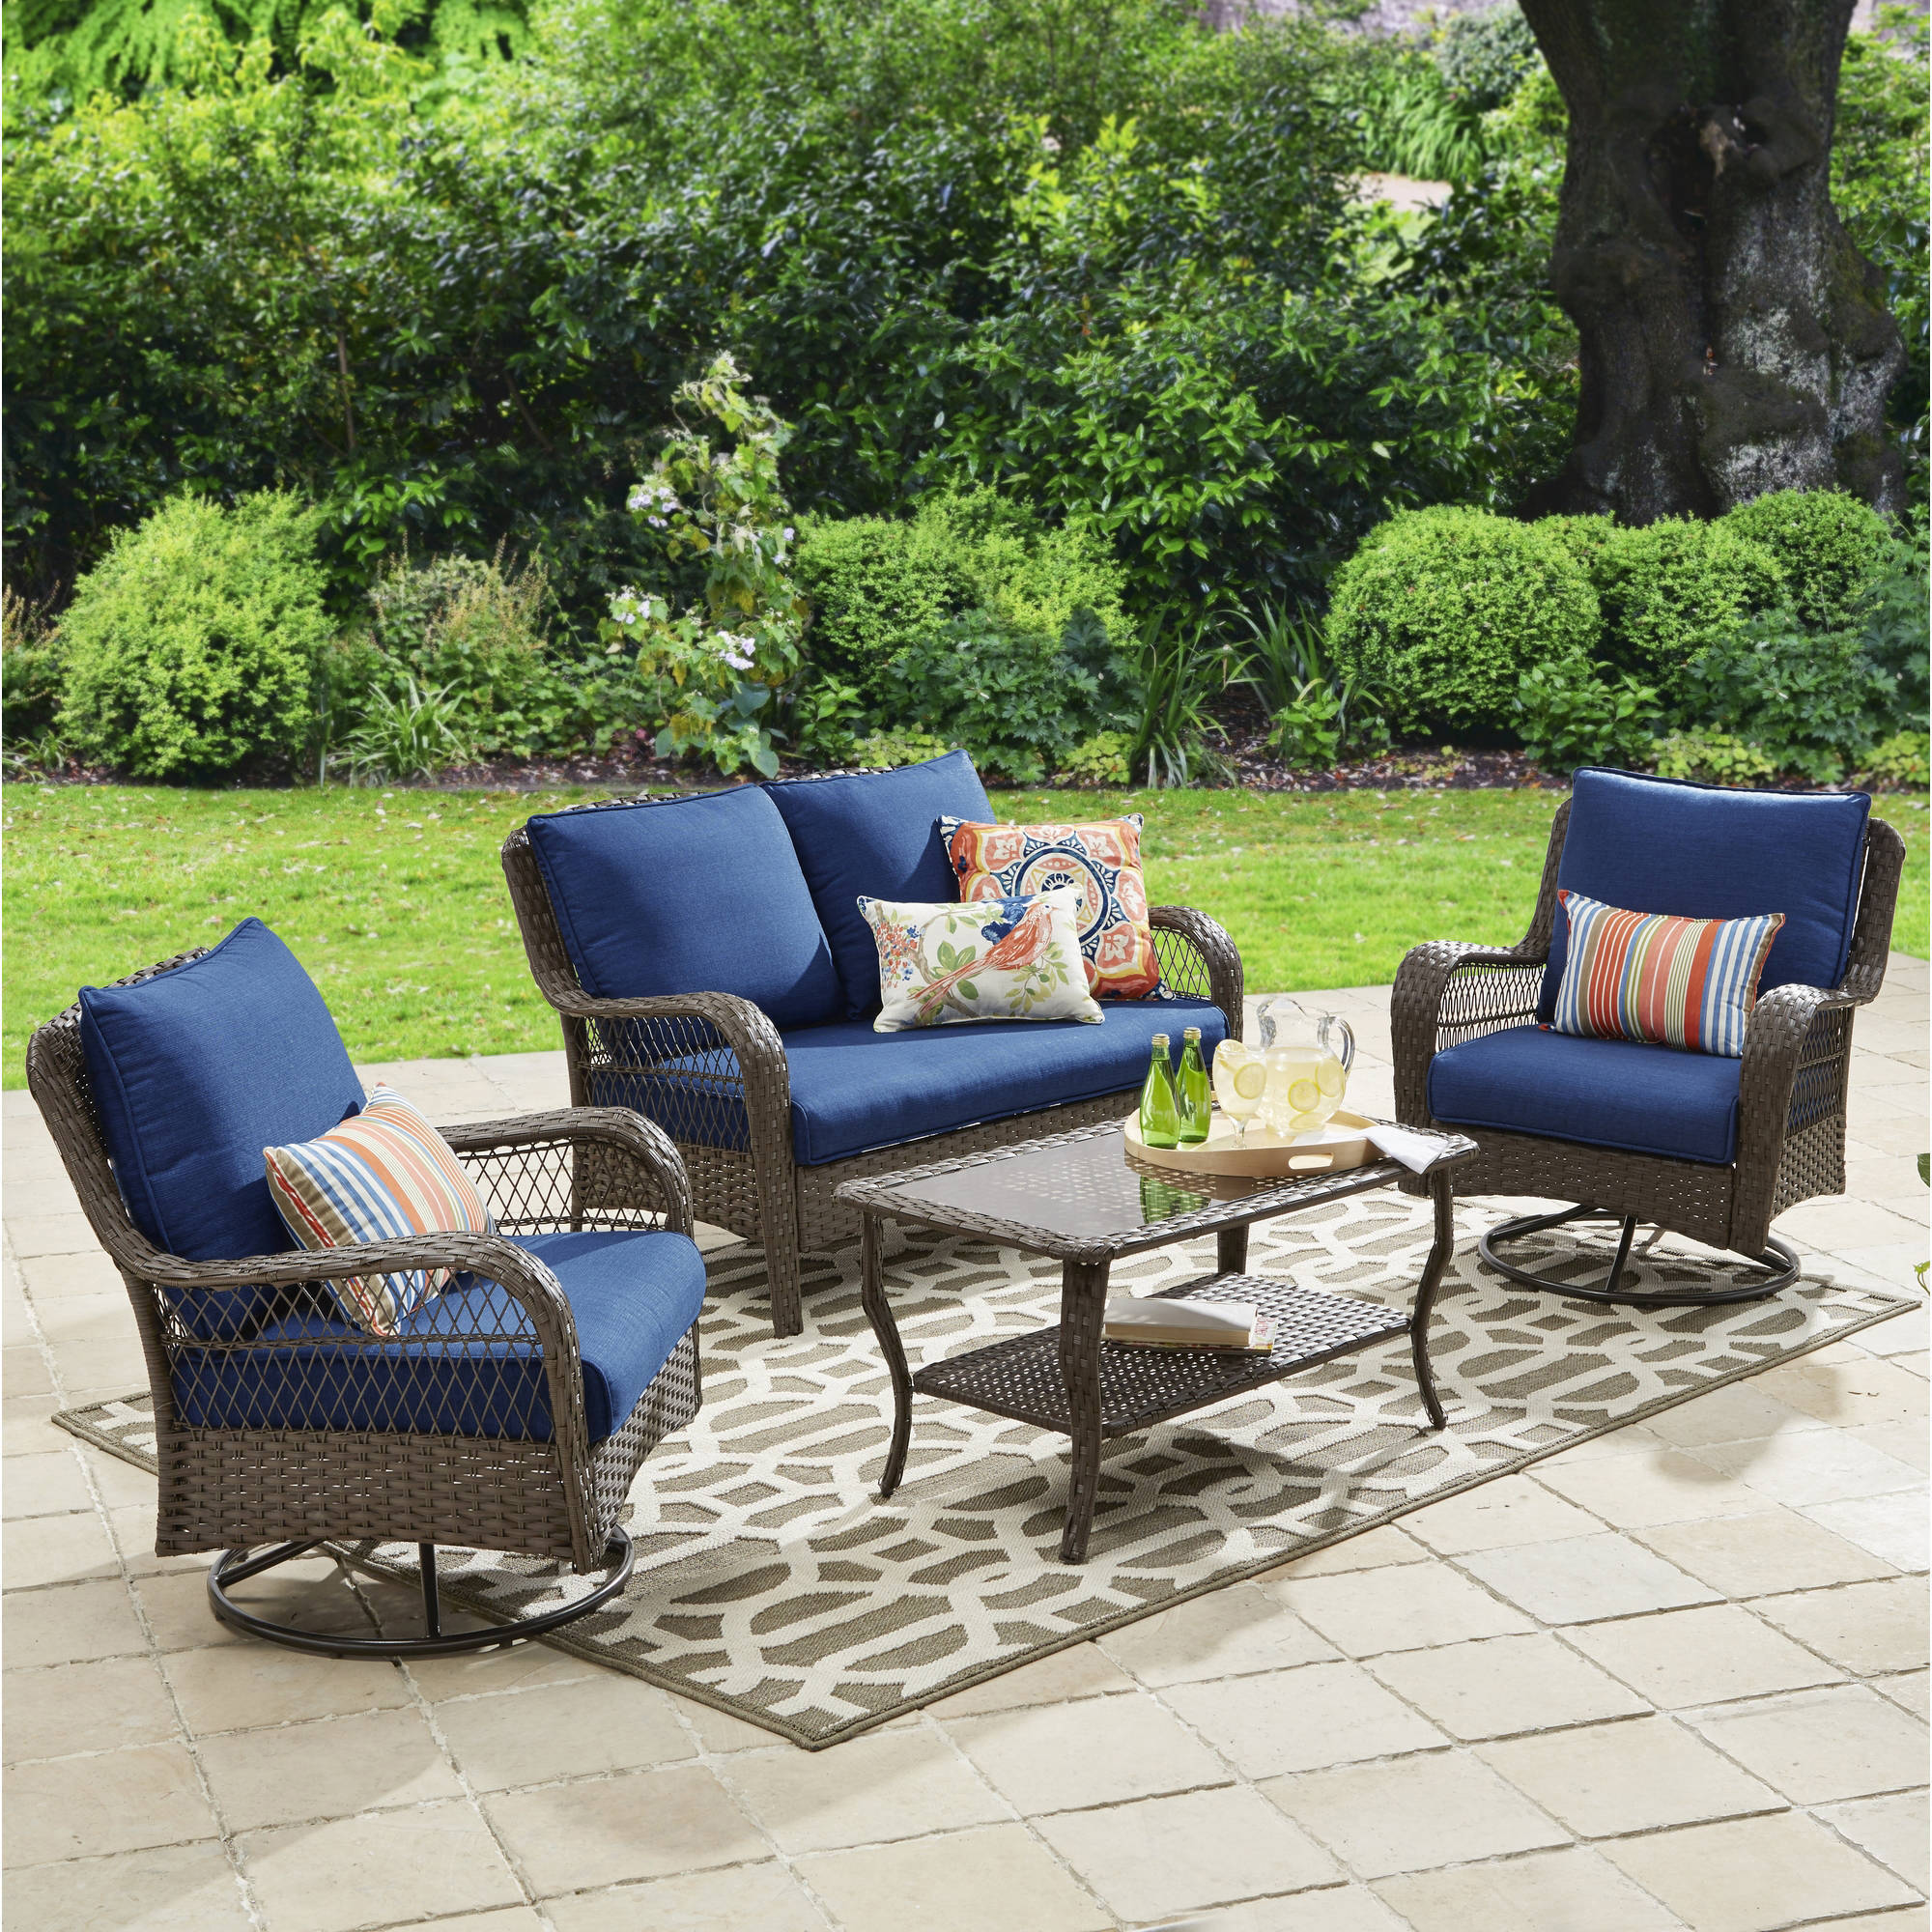 Better Homes and Gardens Colebrook 4 Piece Outdoor Conversation Set, Seats 5 Blue